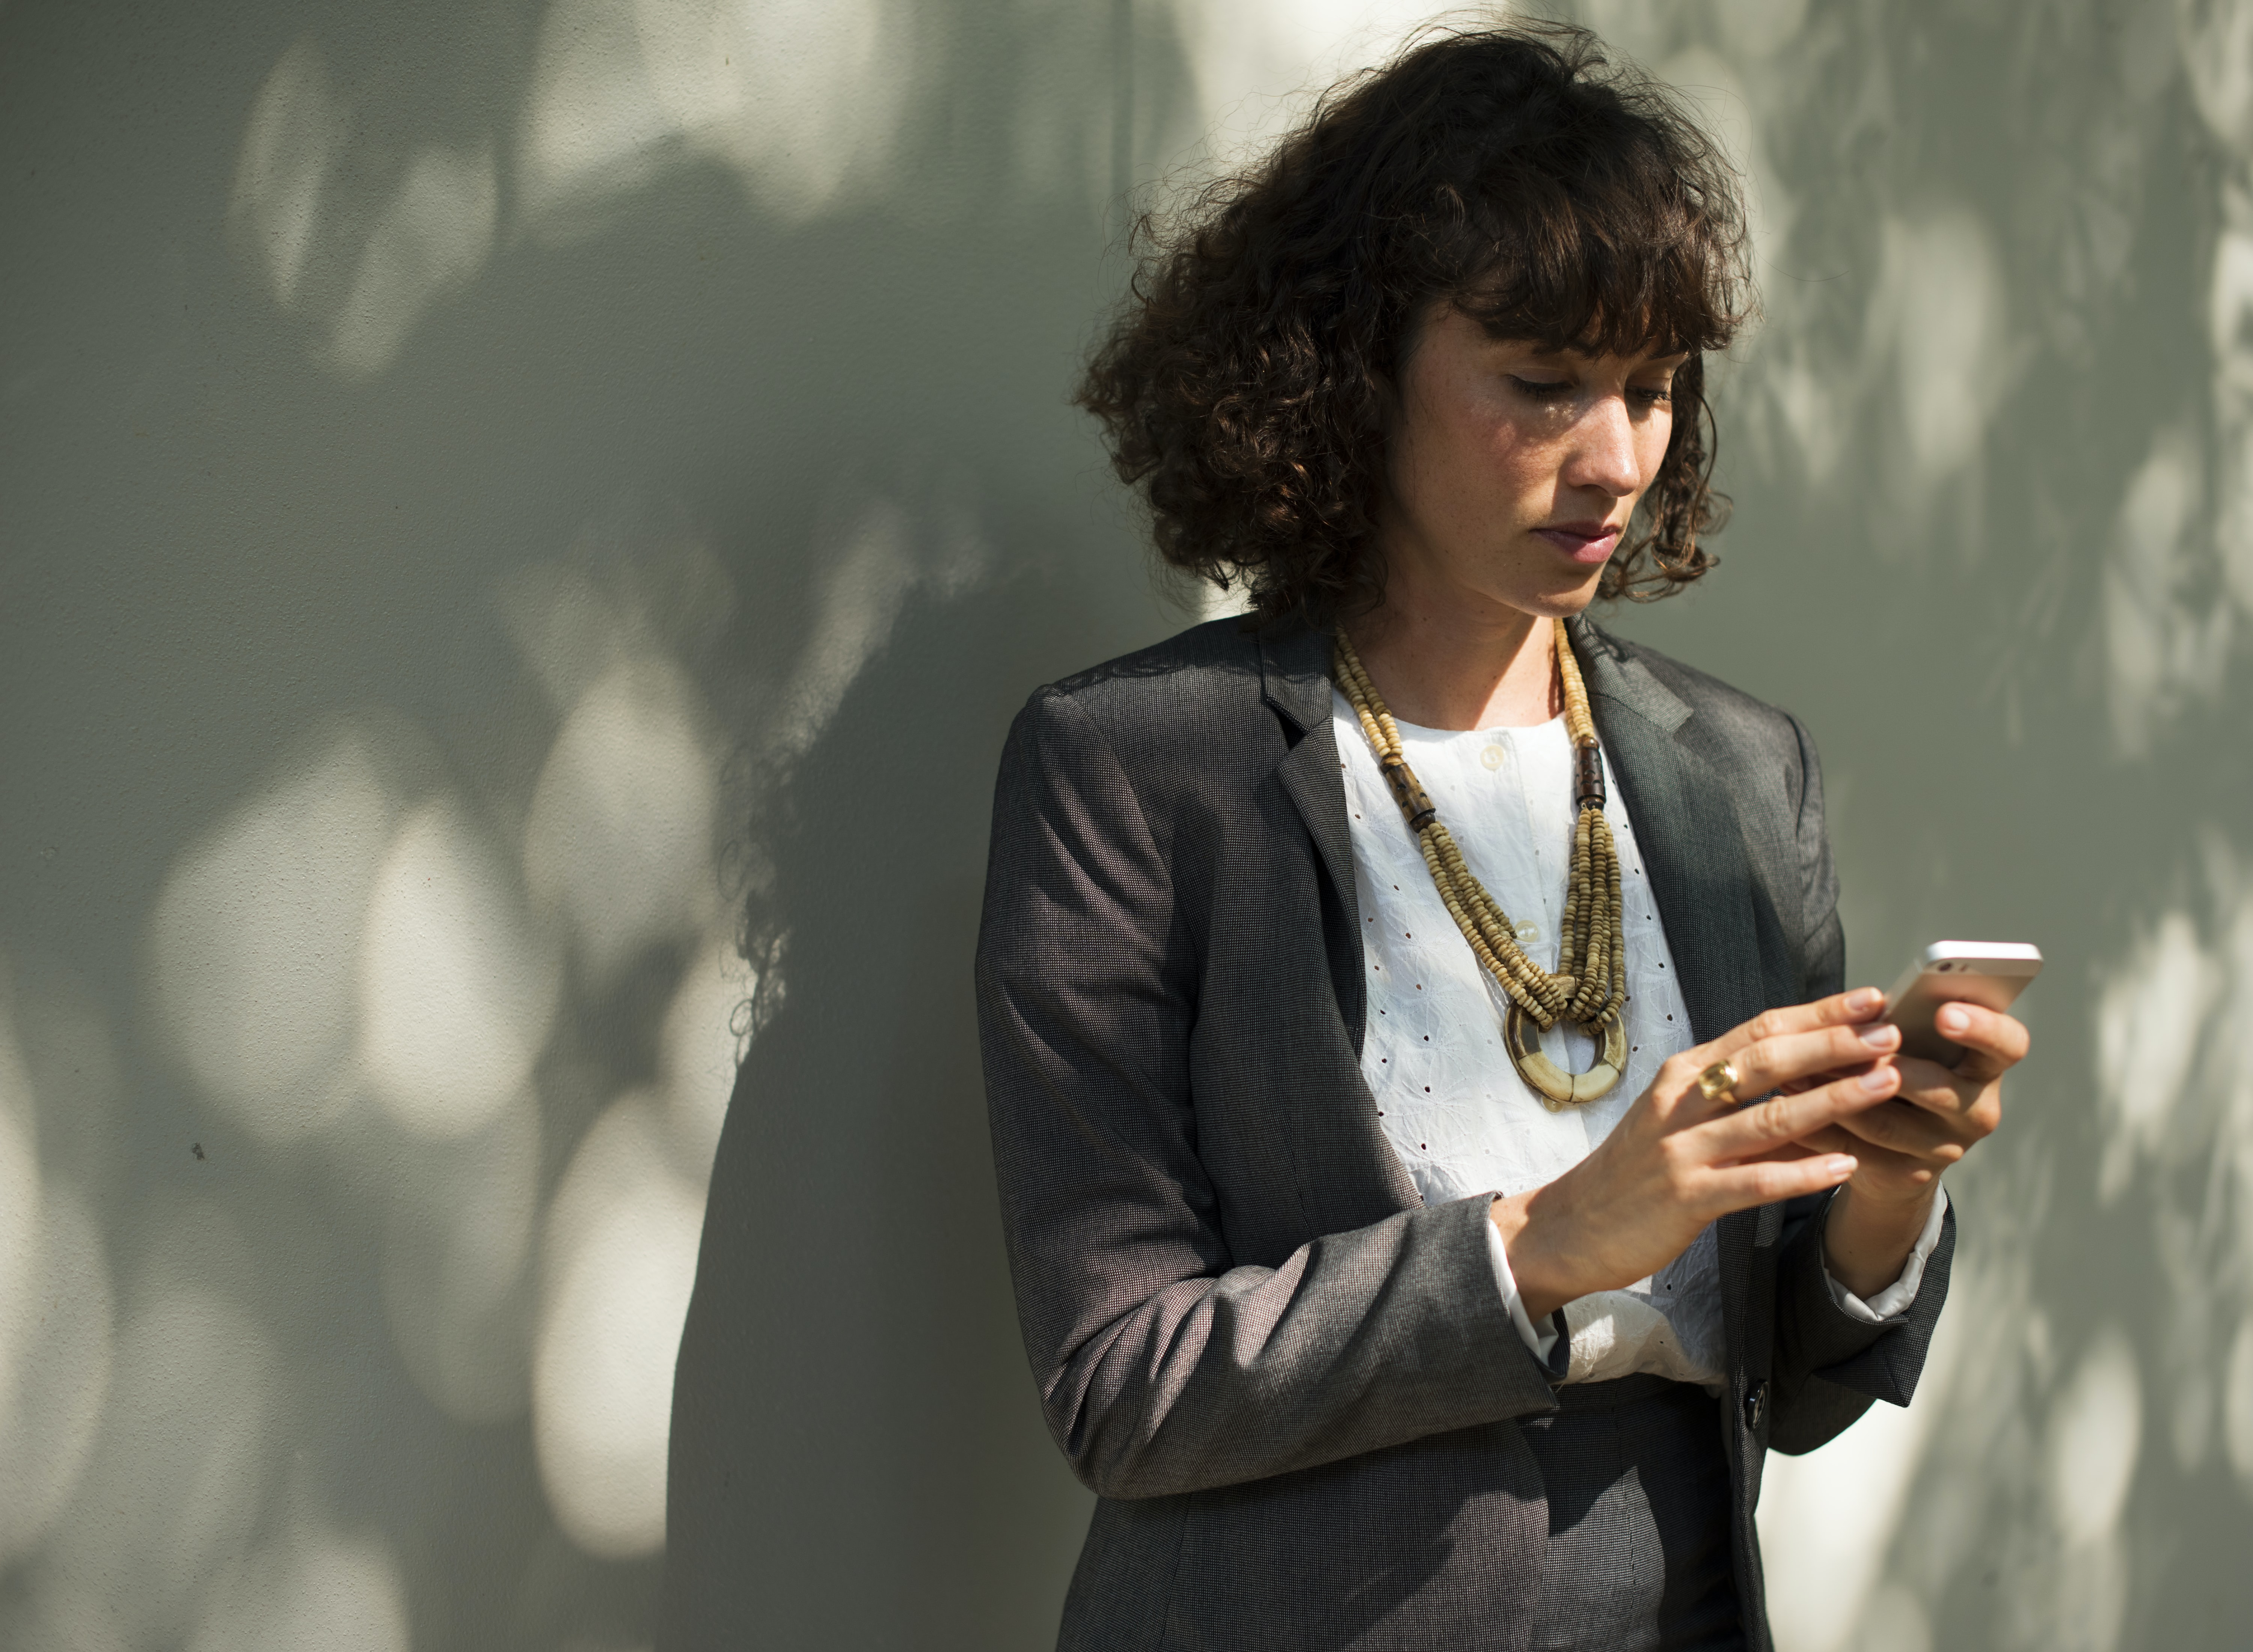 woman holding smartphone standing near wall